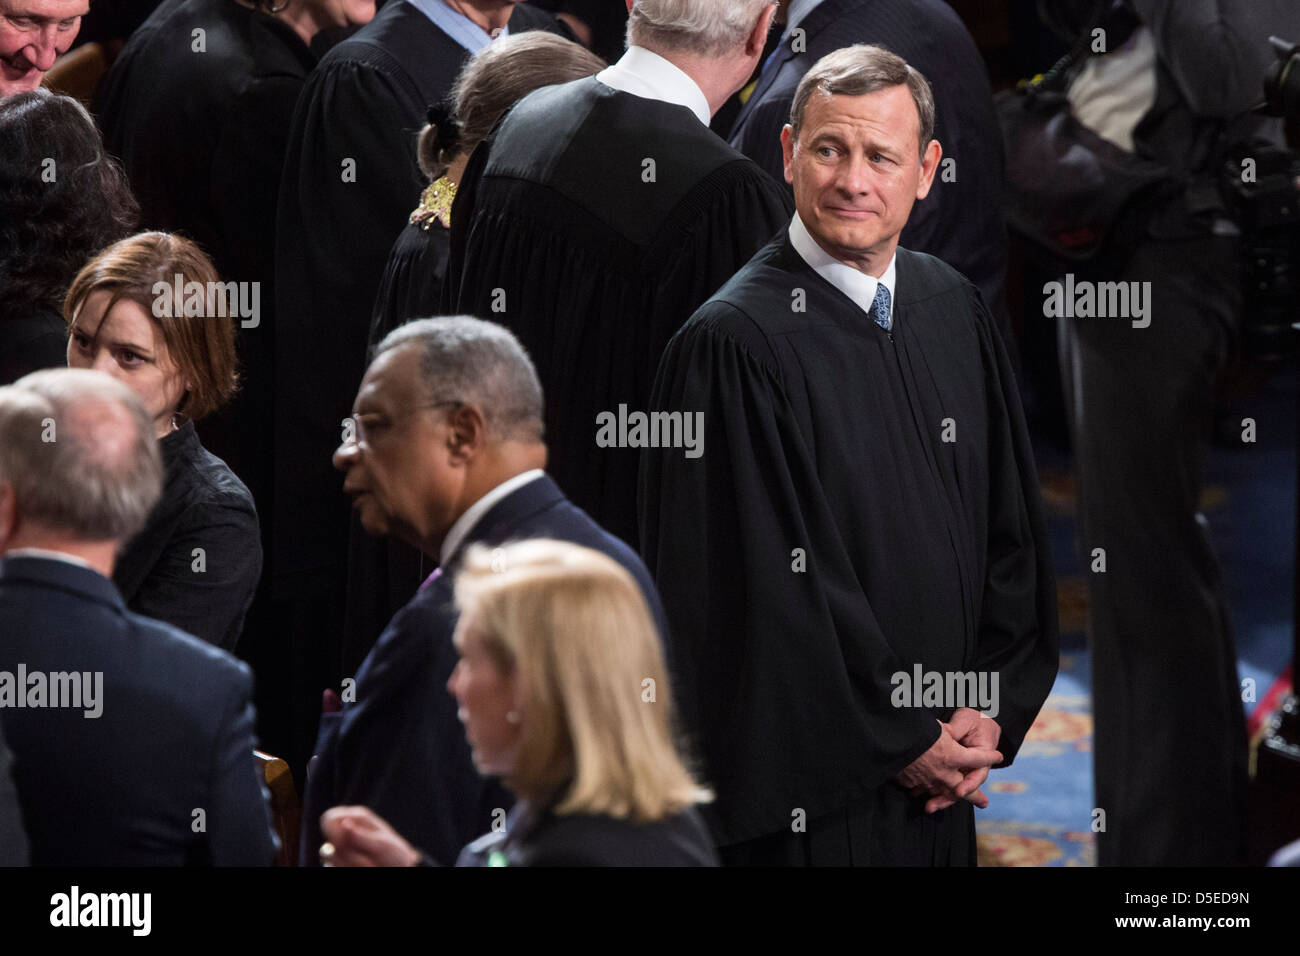 John Roberts, Chief Justice of the U.S. Supreme Court wait for the start of the State of the Union Address on Capitol - Stock Image